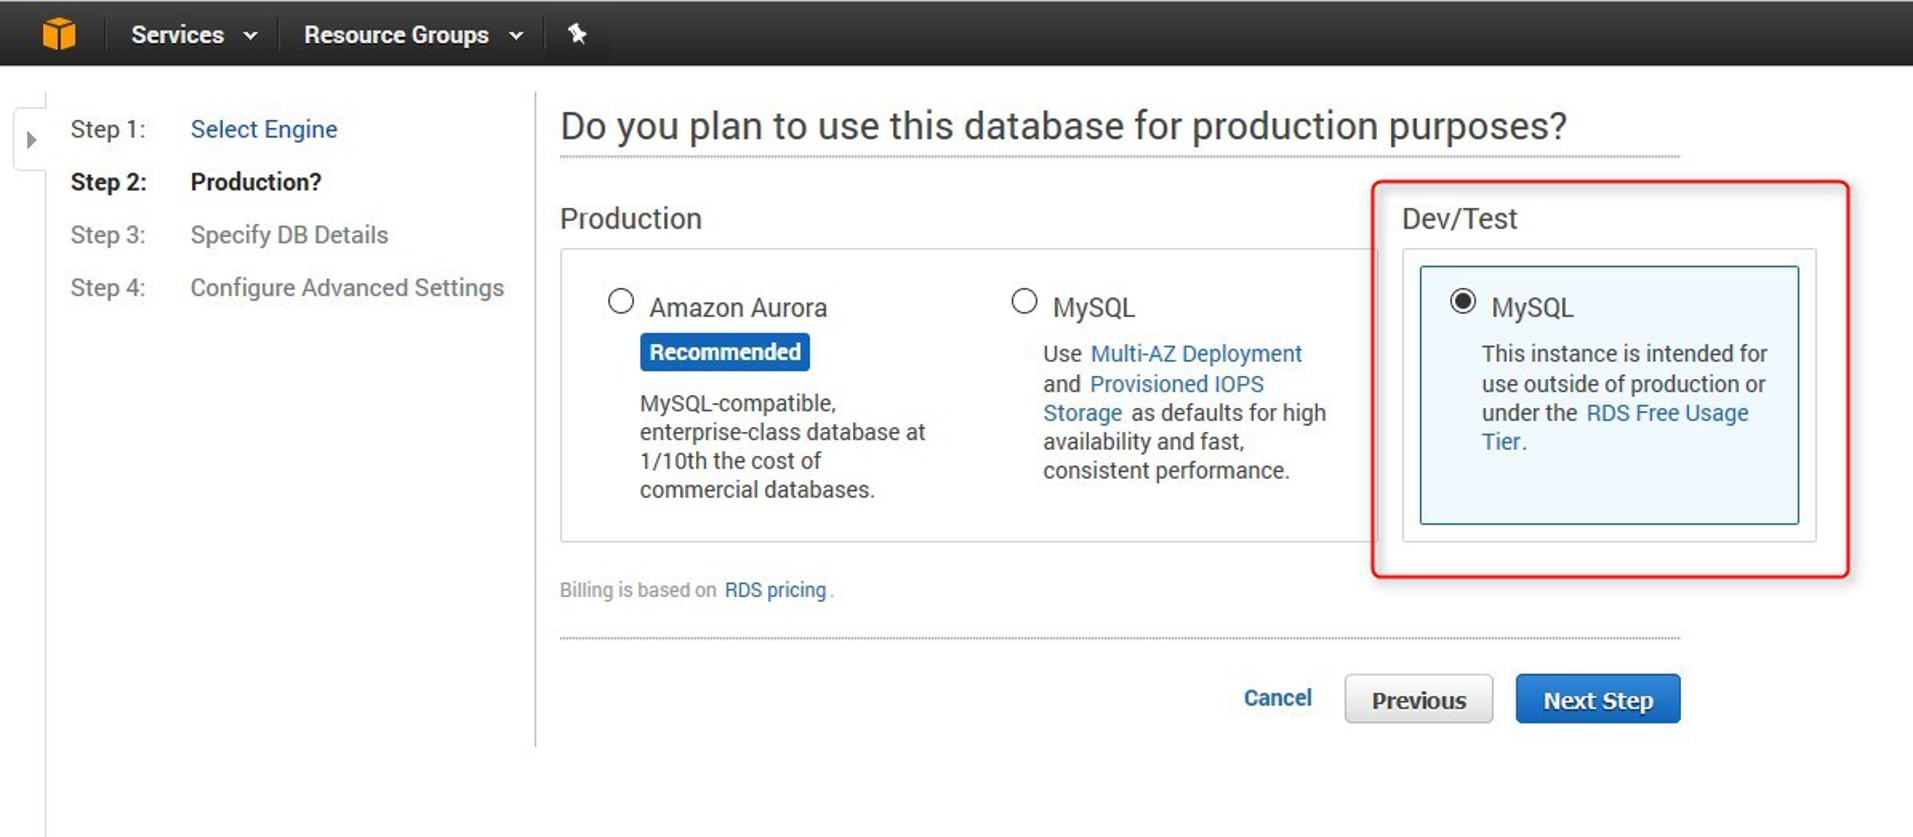 How to create an instance of a MySQL database in Amazon RDS